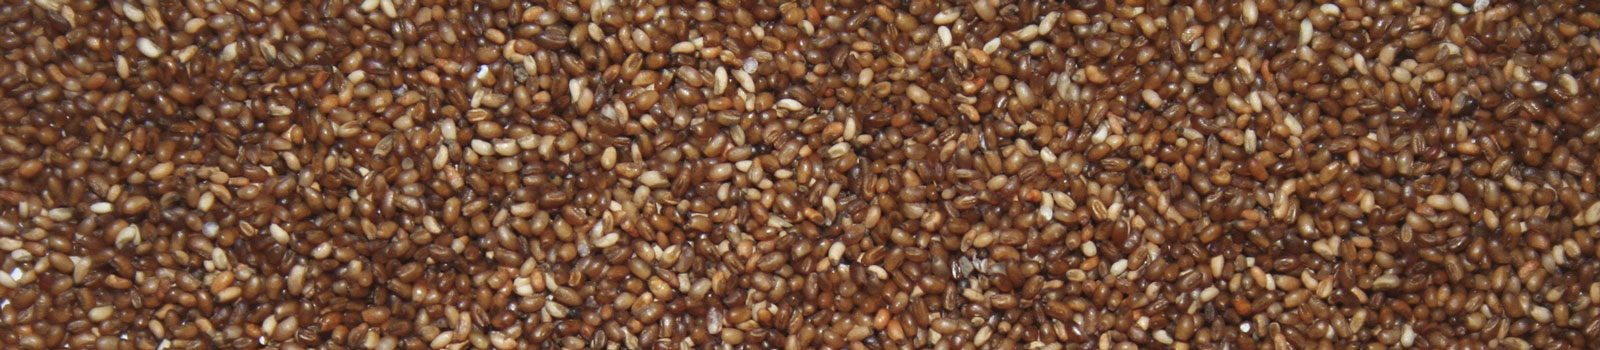 teff cereales afrique